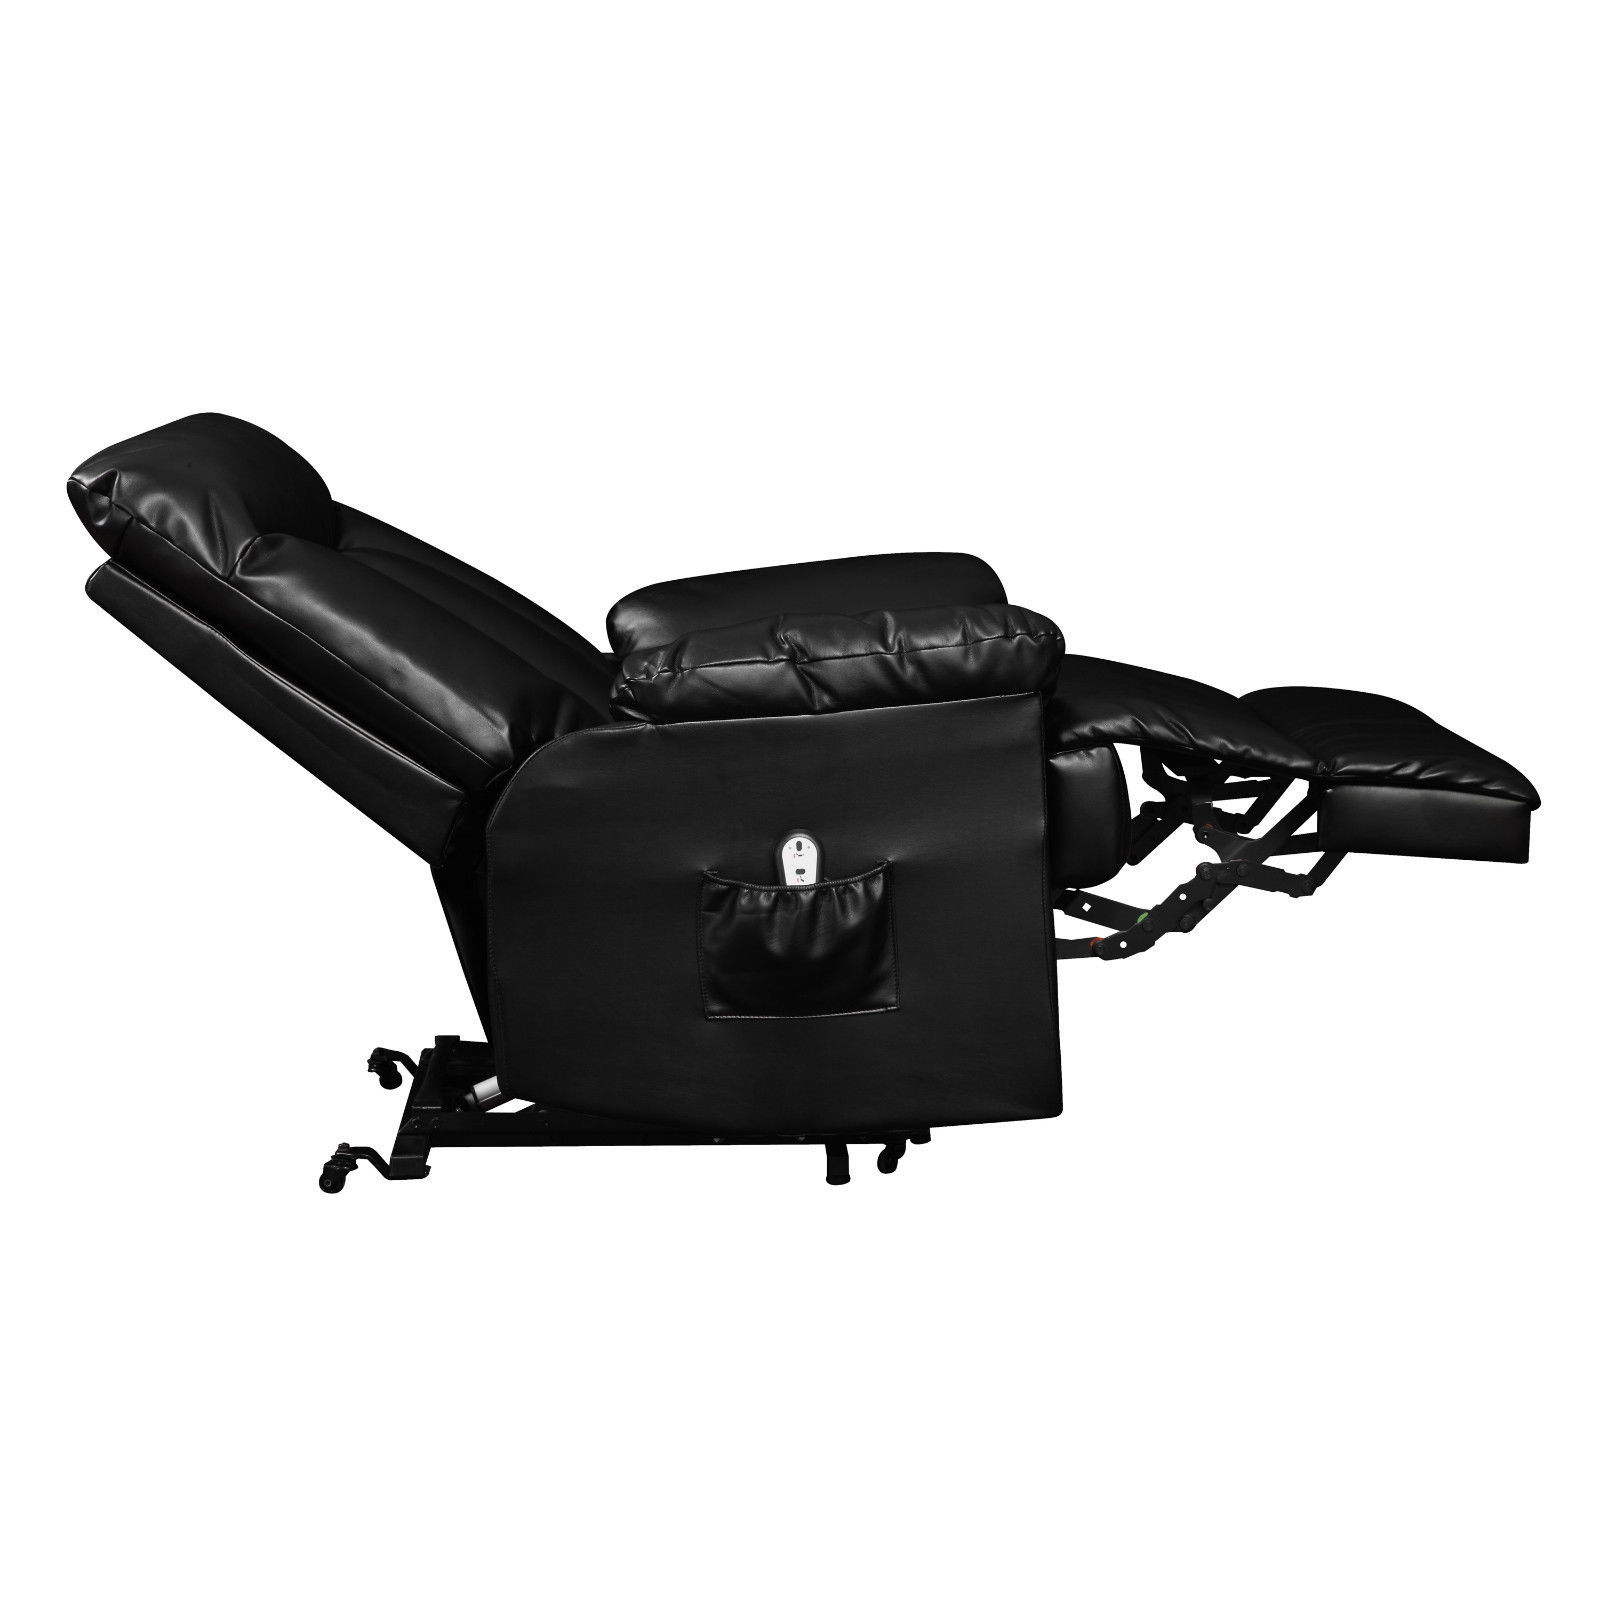 seat lift chair swing walmart electric recliner black leather power motion